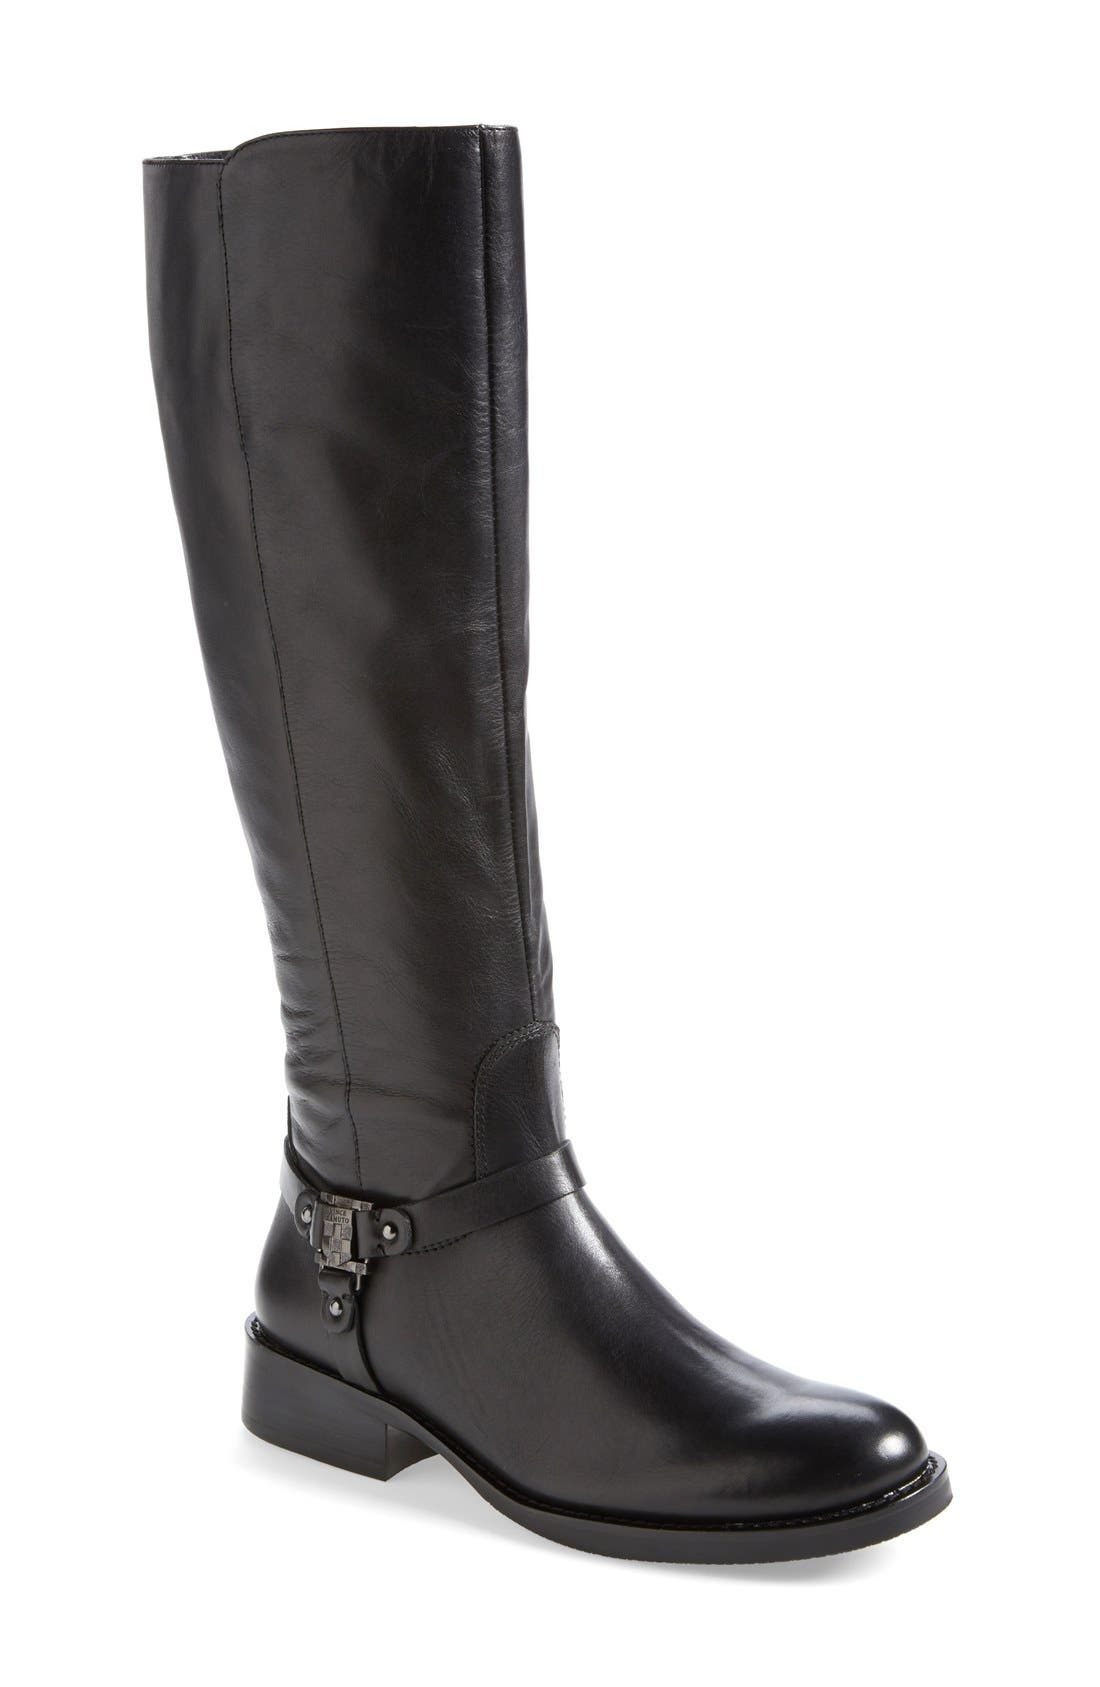 VINCE CAMUTO 'Farren' Riding Boot, Main, color, 001